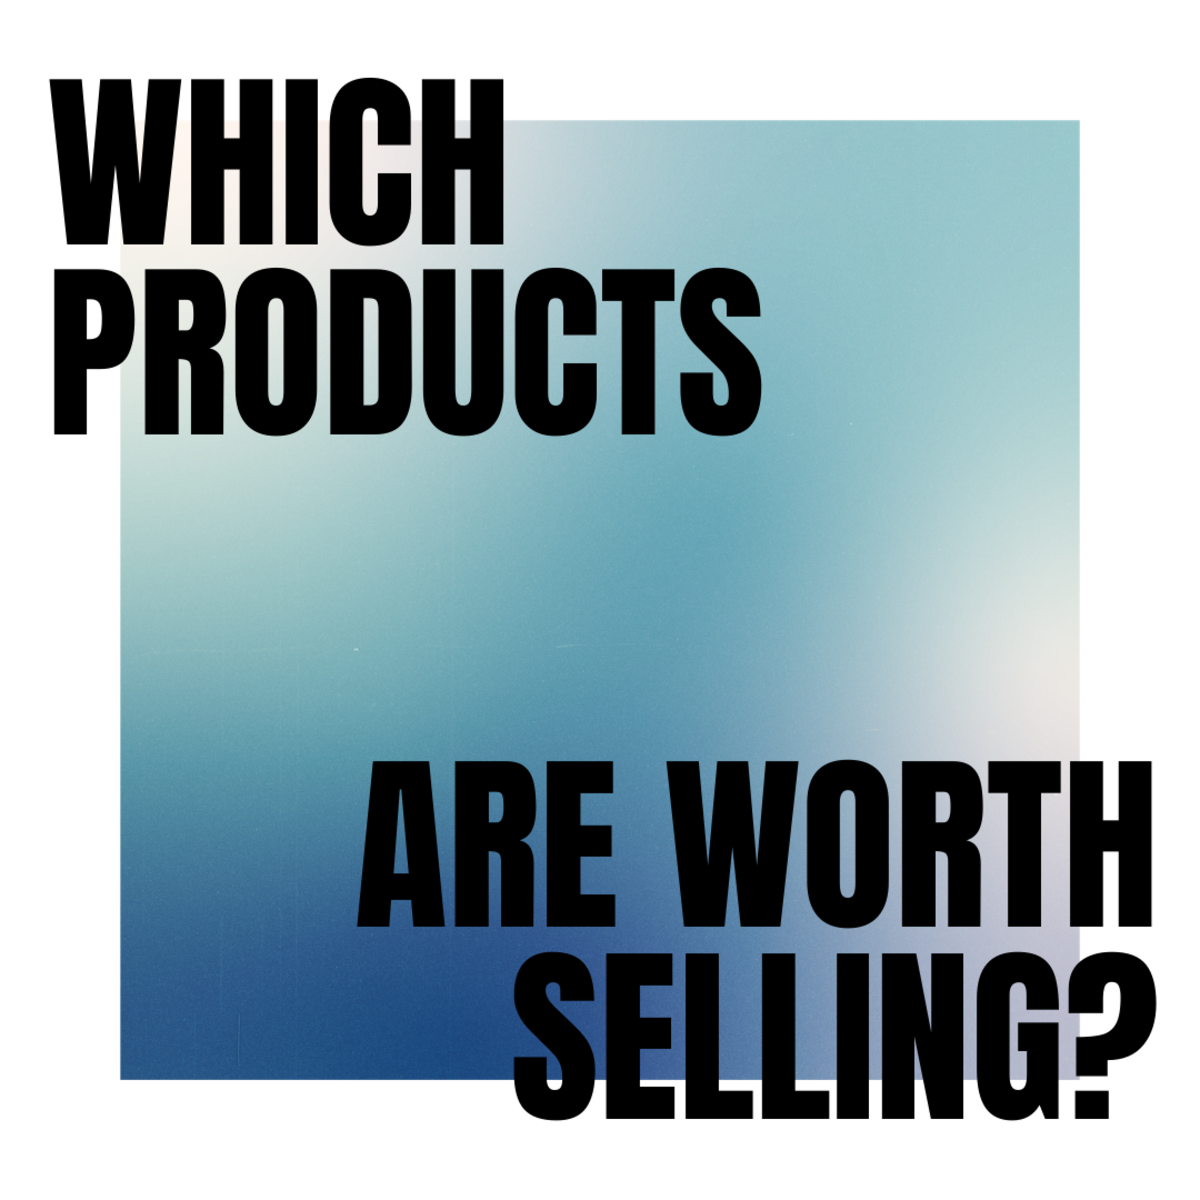 Read on to find out what products are worth your time trying to sell.